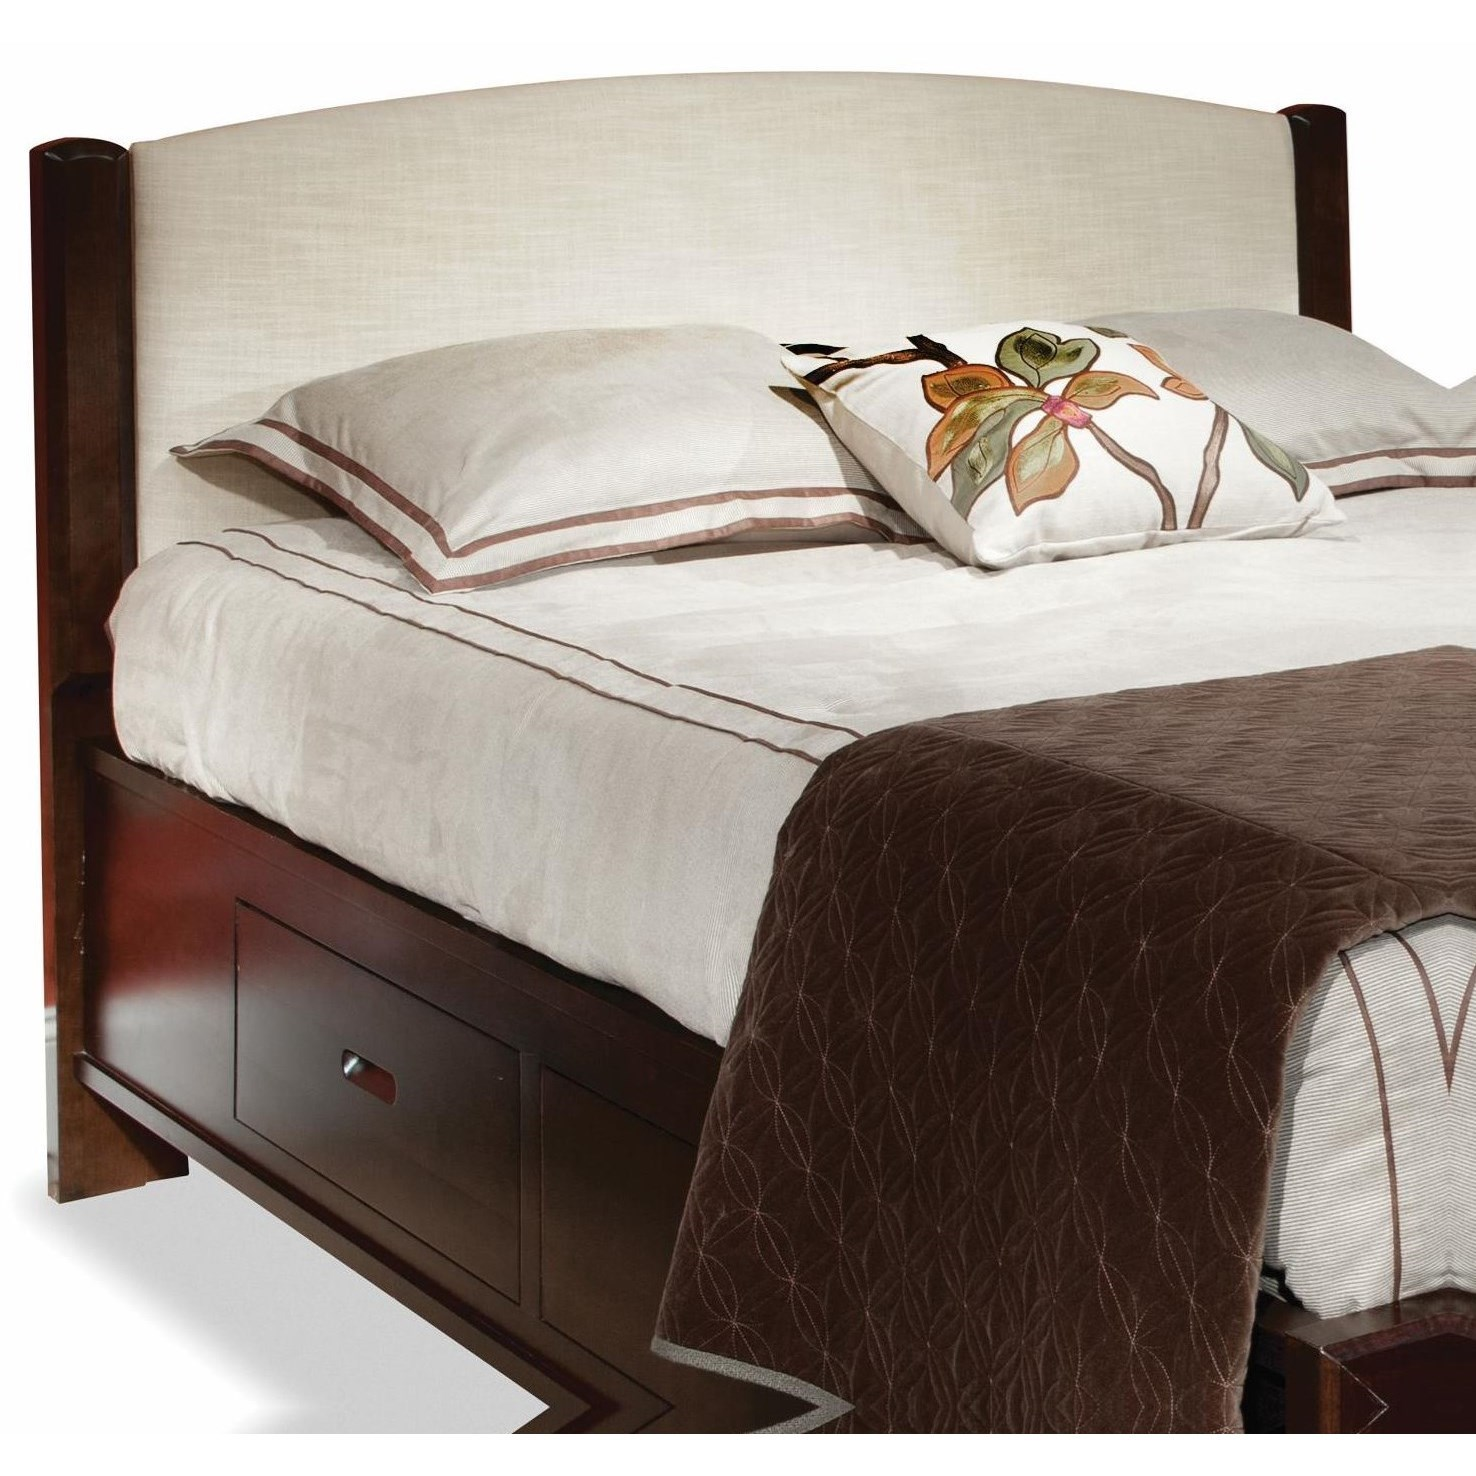 Beds King Fabric Panel Headboard by perfectbalance by Durham Furniture at Stoney Creek Furniture